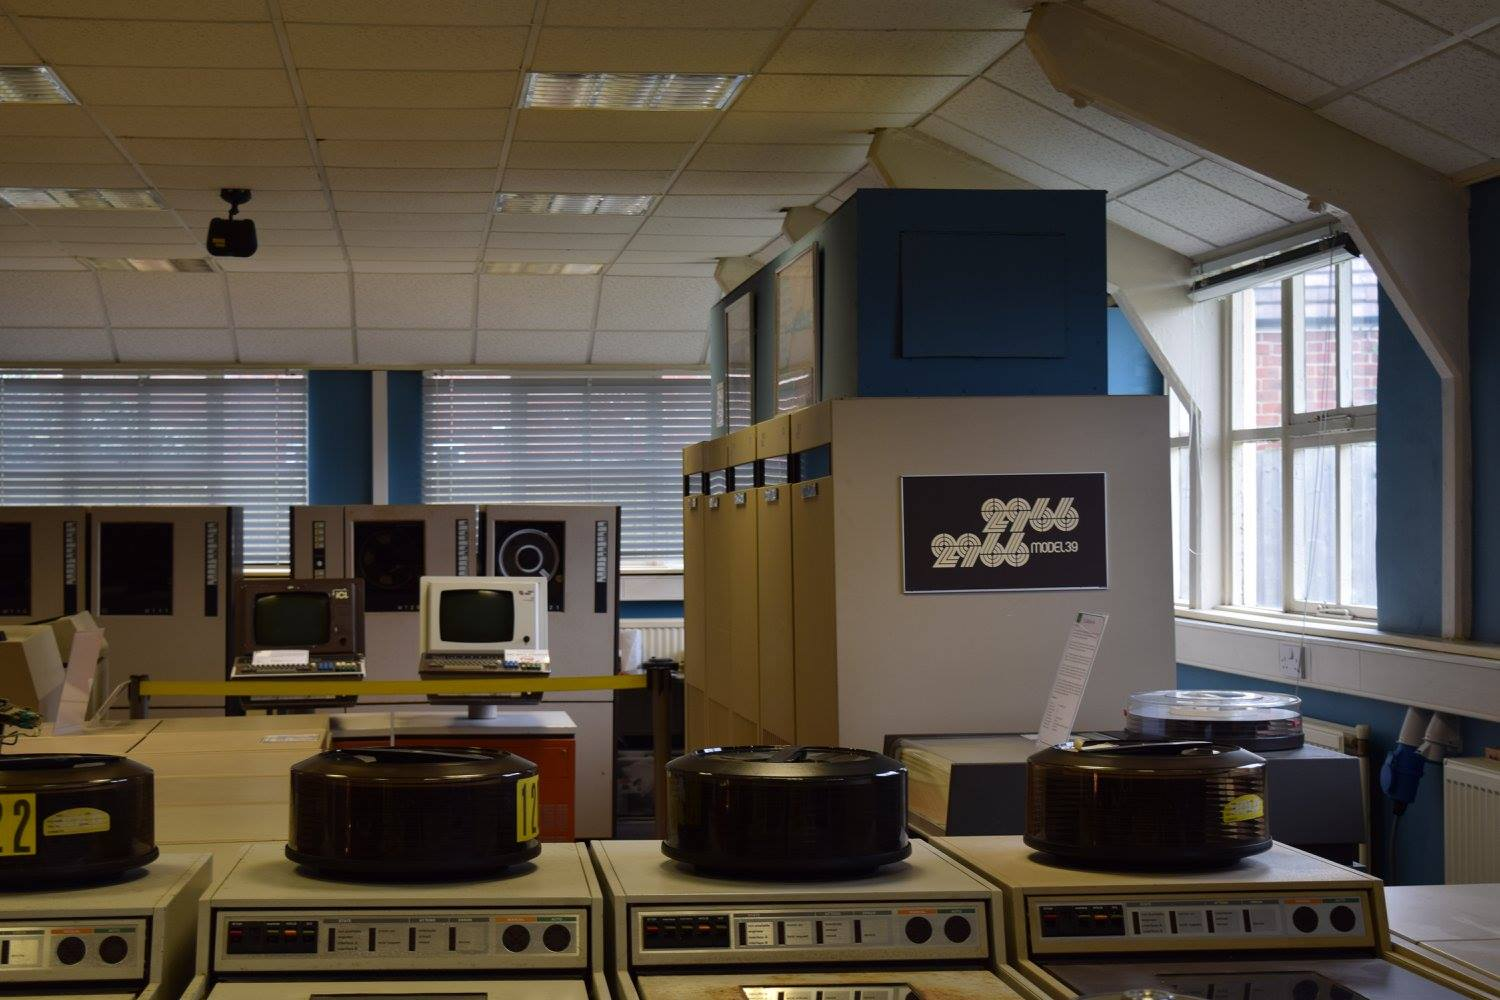 The National Museum of Computing (ICL2966 Mainframe) Photo credit © L Rowe 2016